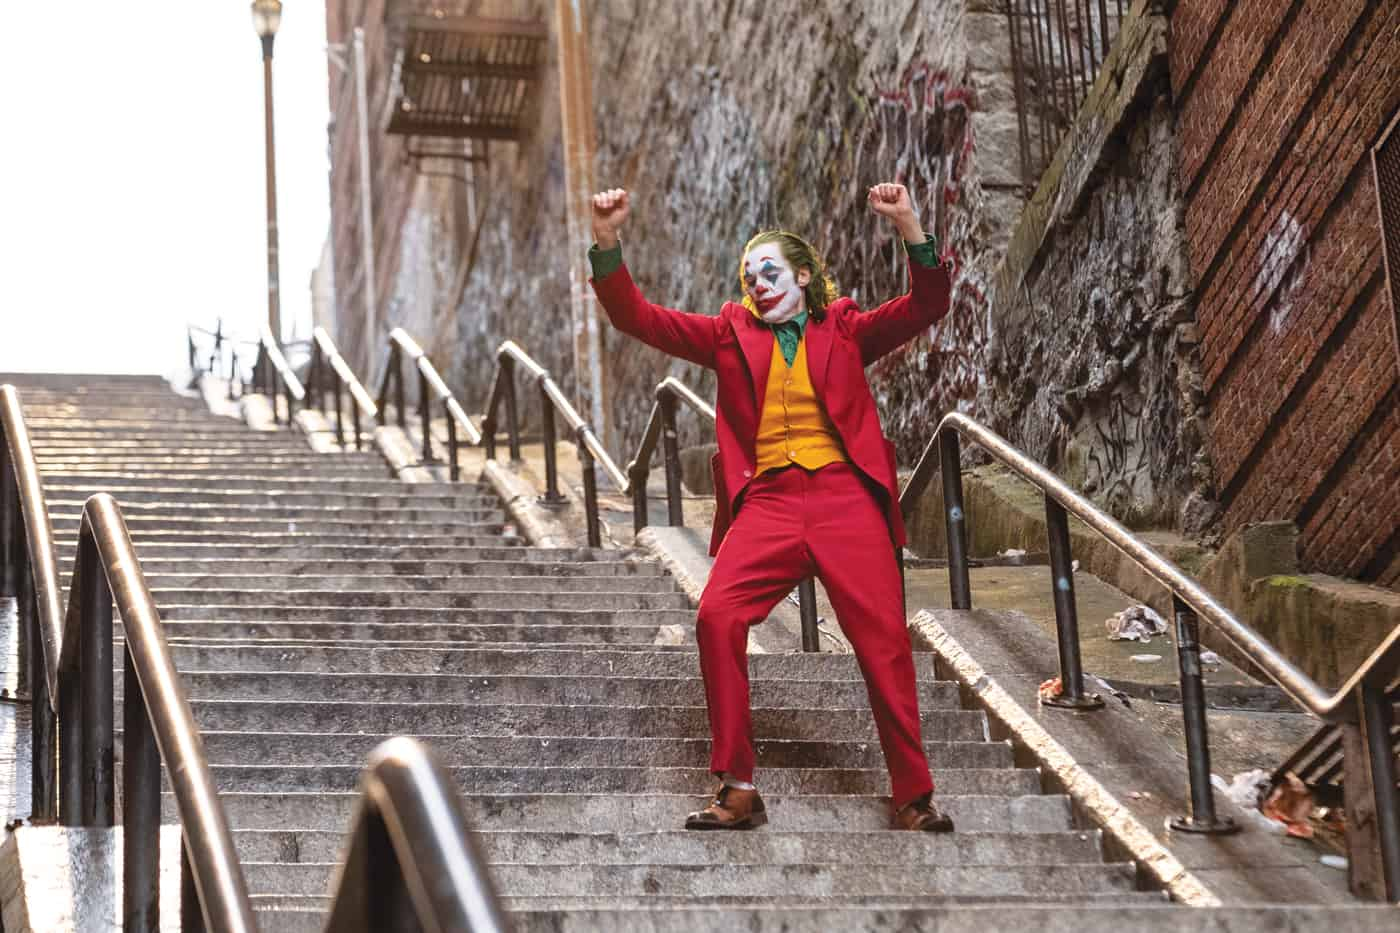 Joker: Contemplating Risk in a Cynical World - Society of Camera Operators